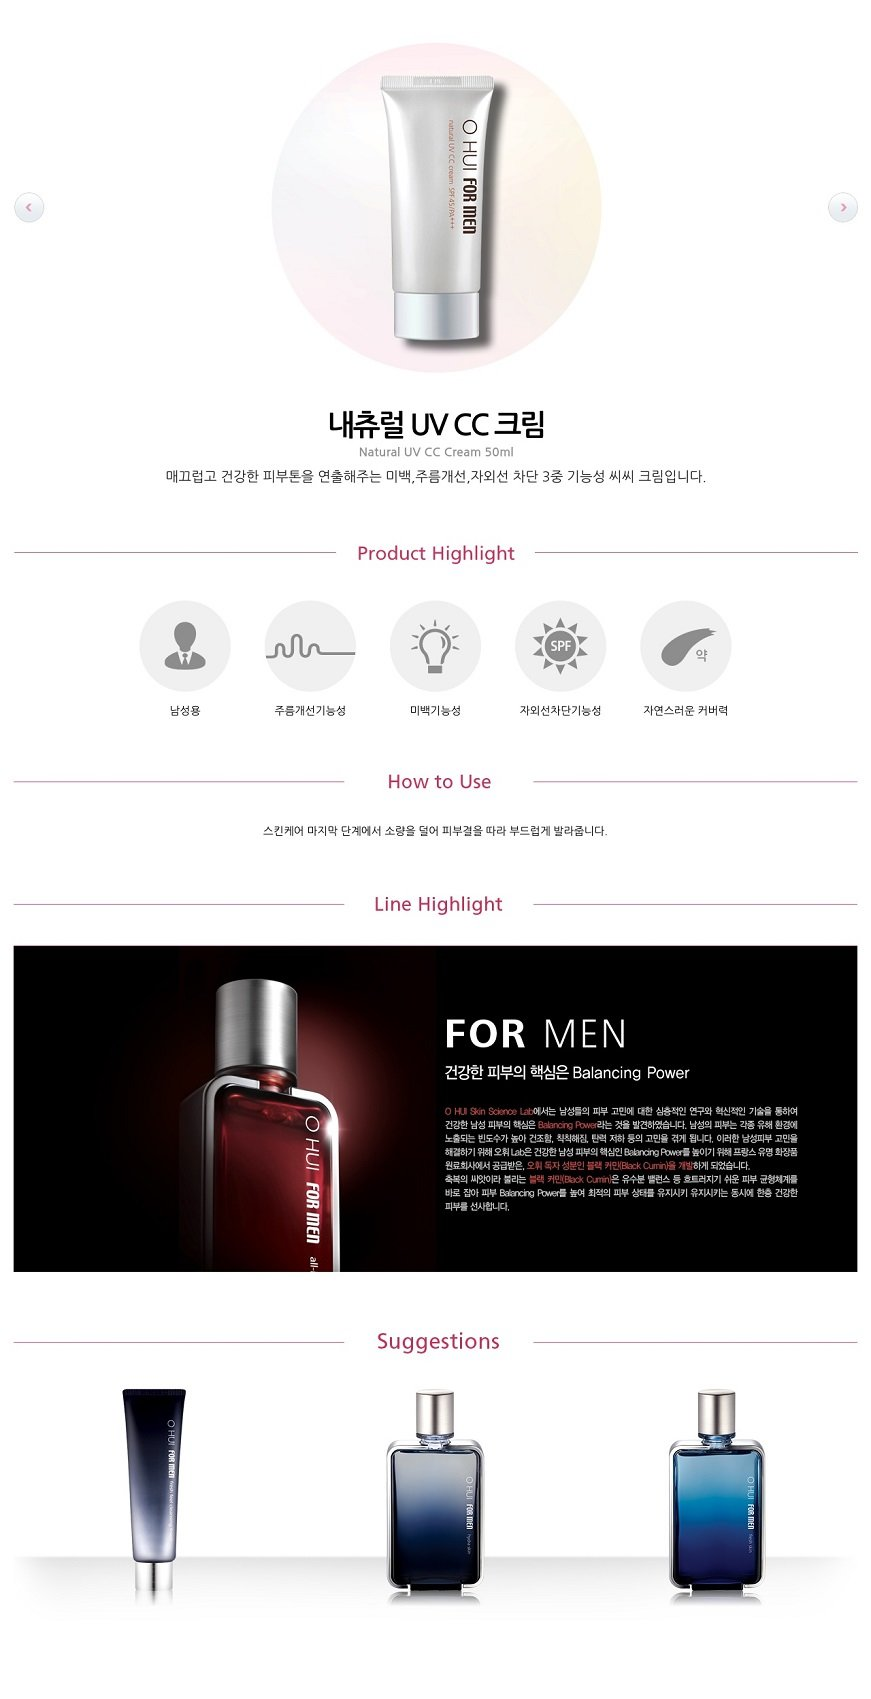 OHUI FOR MEN Natural UV CC Cream 50ml malaysia singapore indonesia